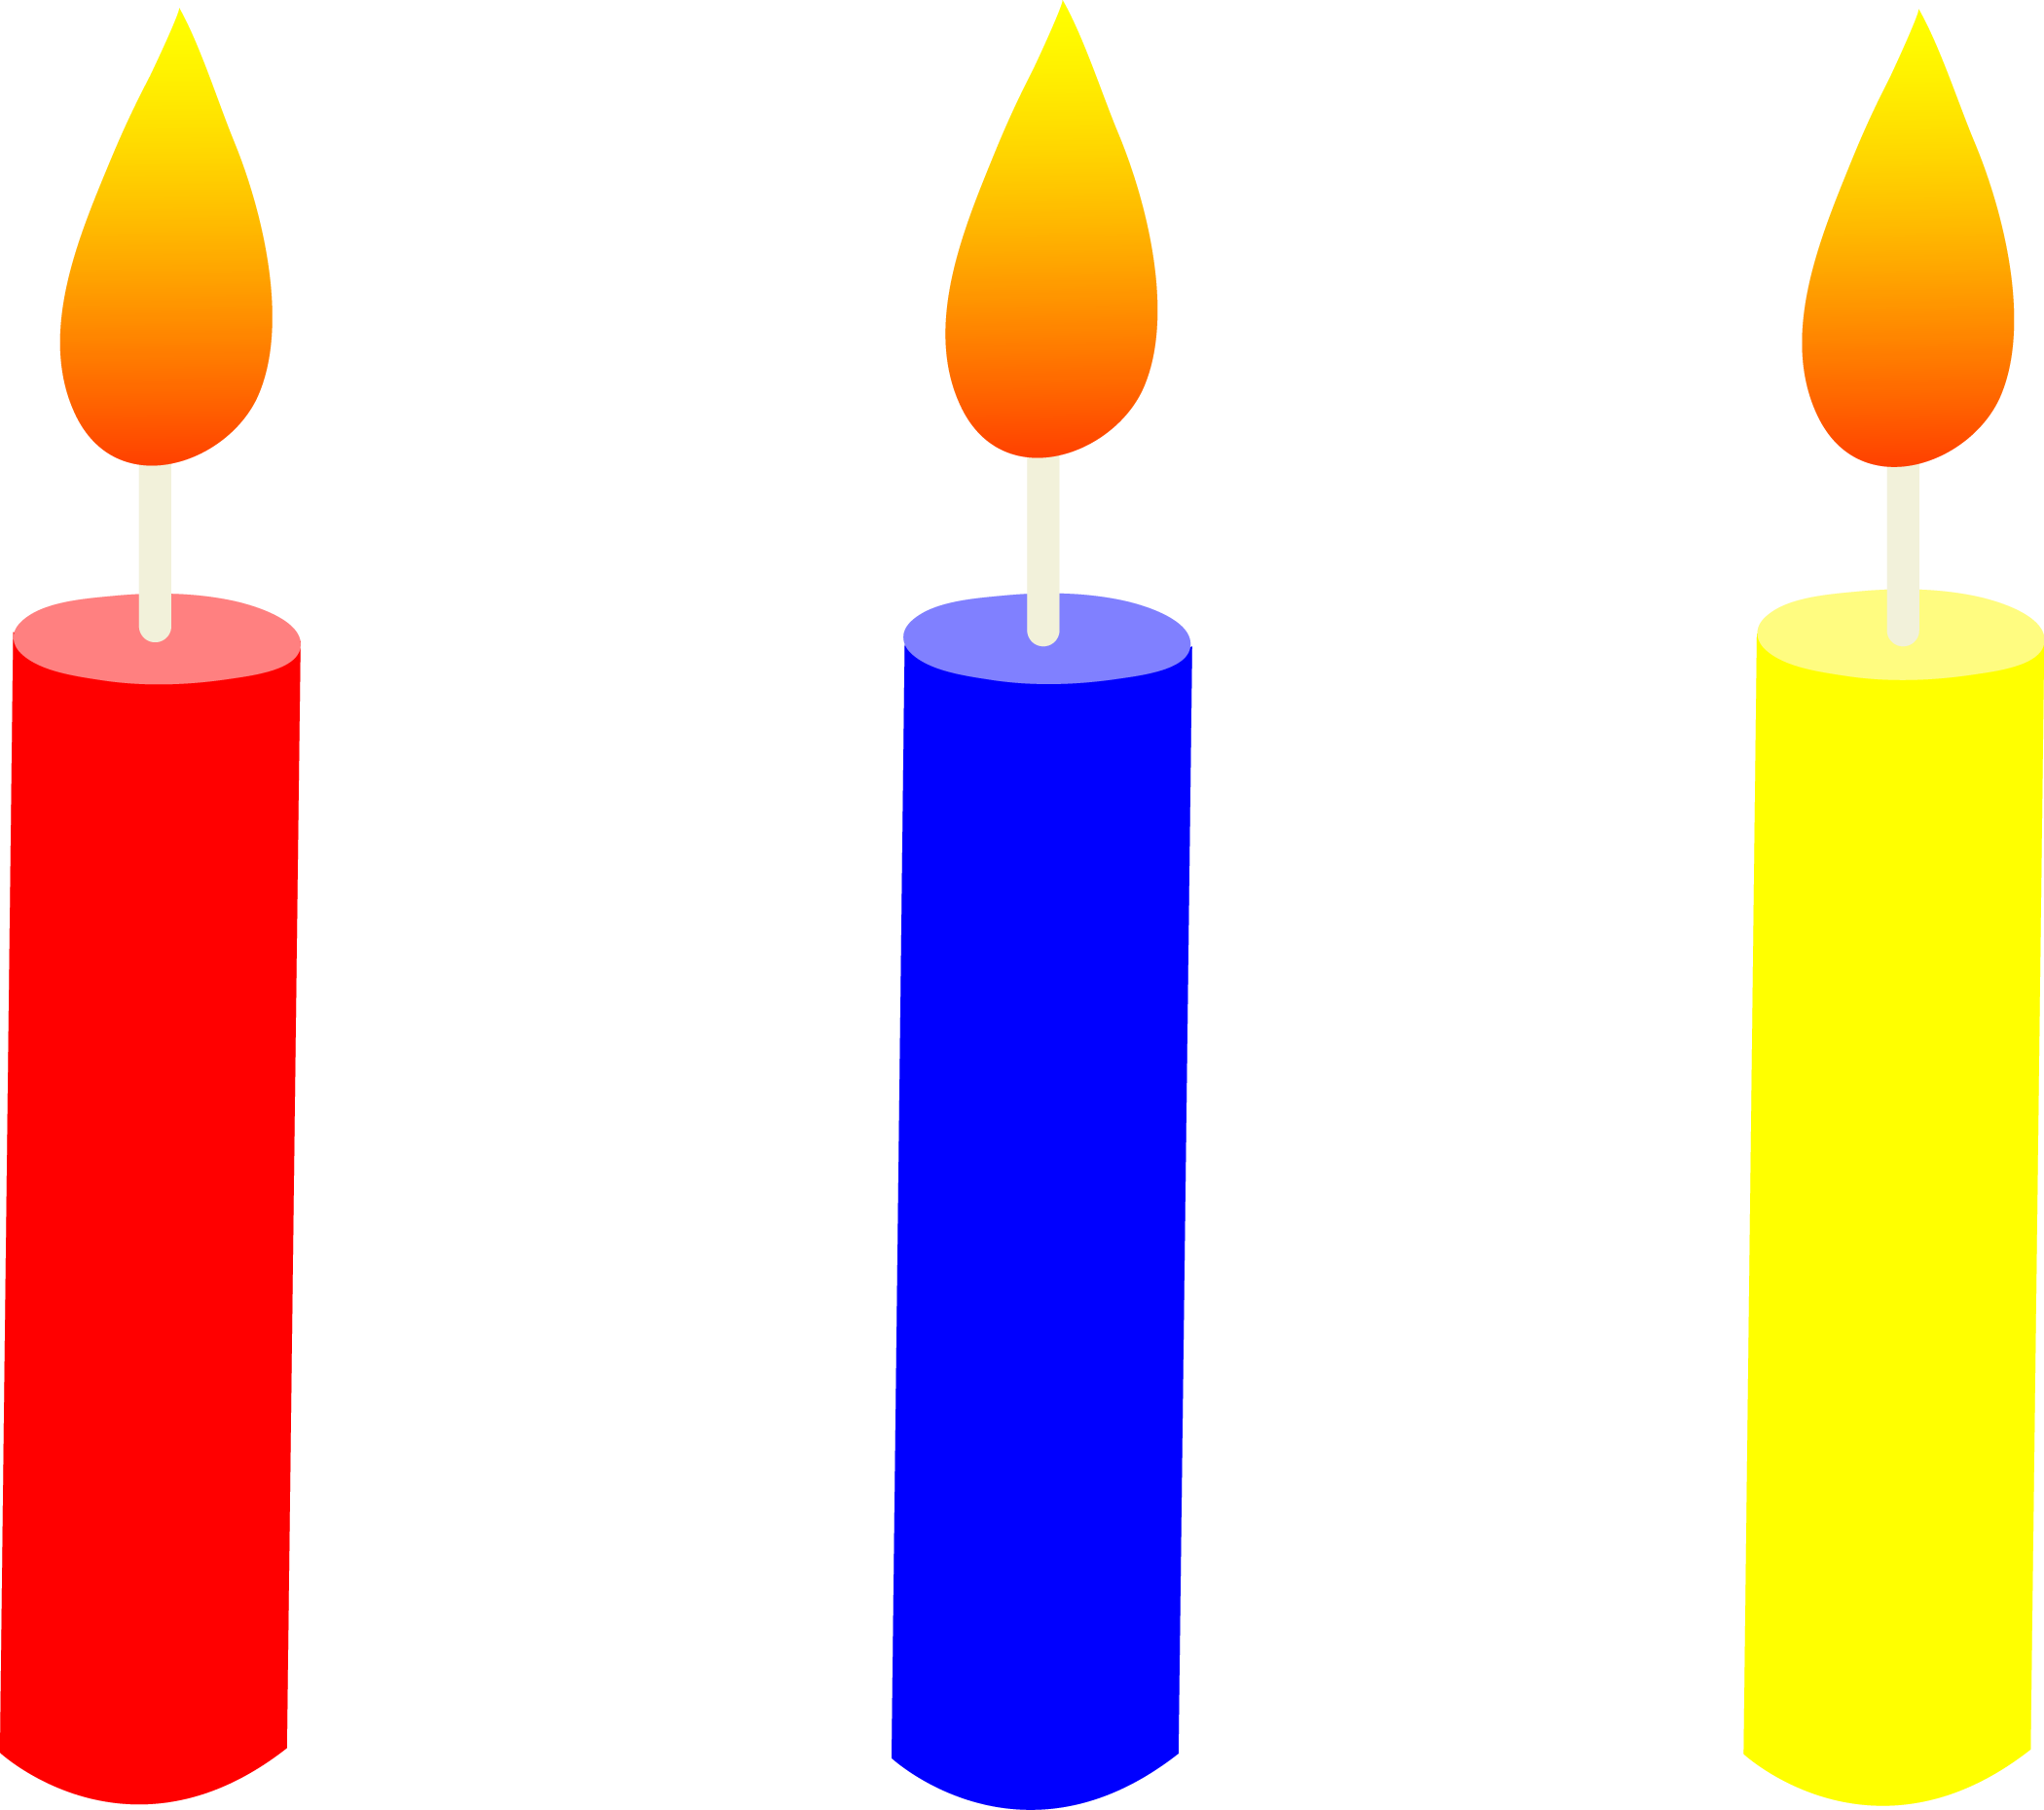 One clipart candle, One candle Transparent FREE for download.